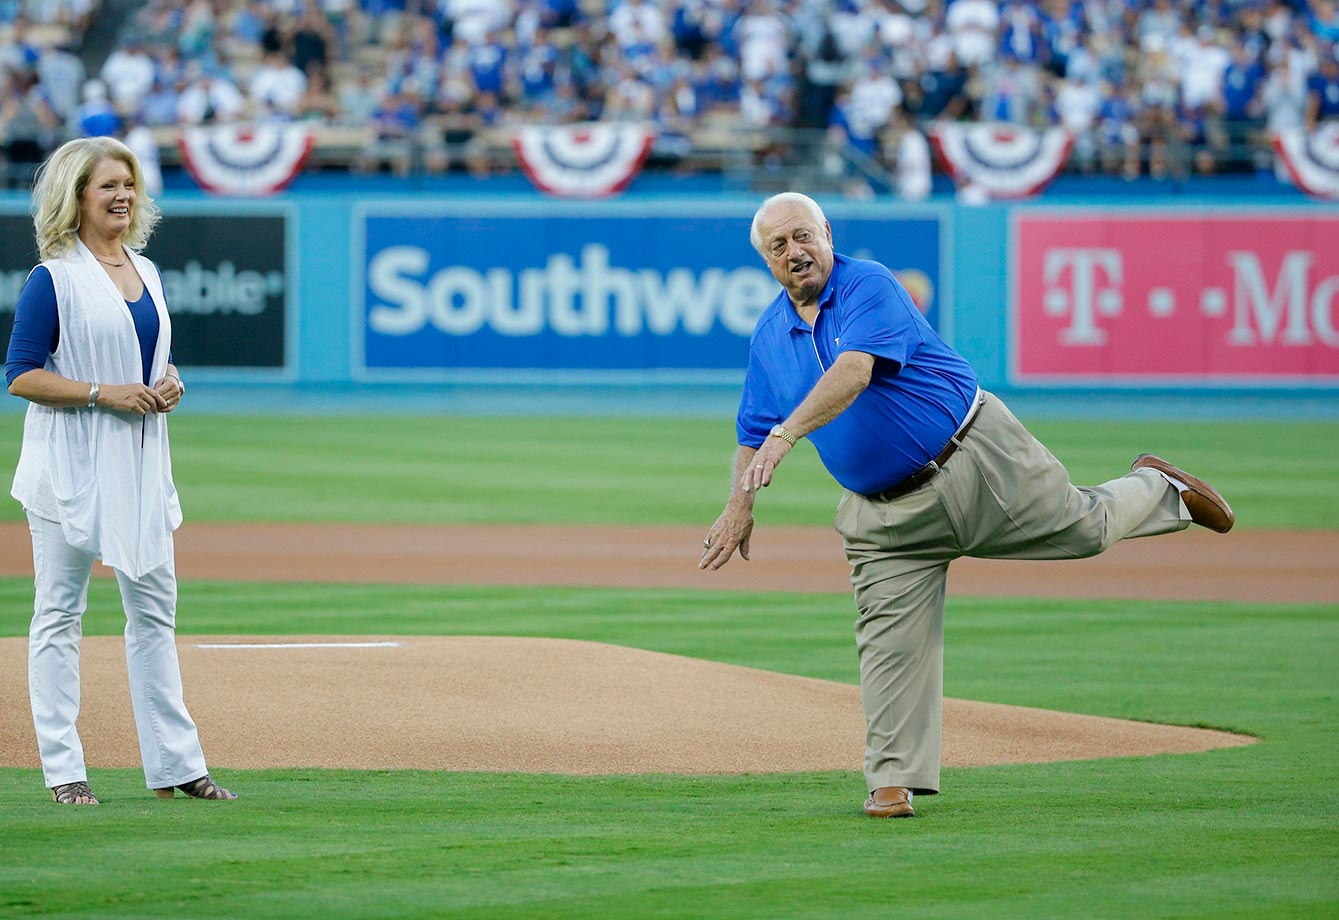 Dodgers fans say Tommy Lasorda threw a strike, Mets fans disagree.